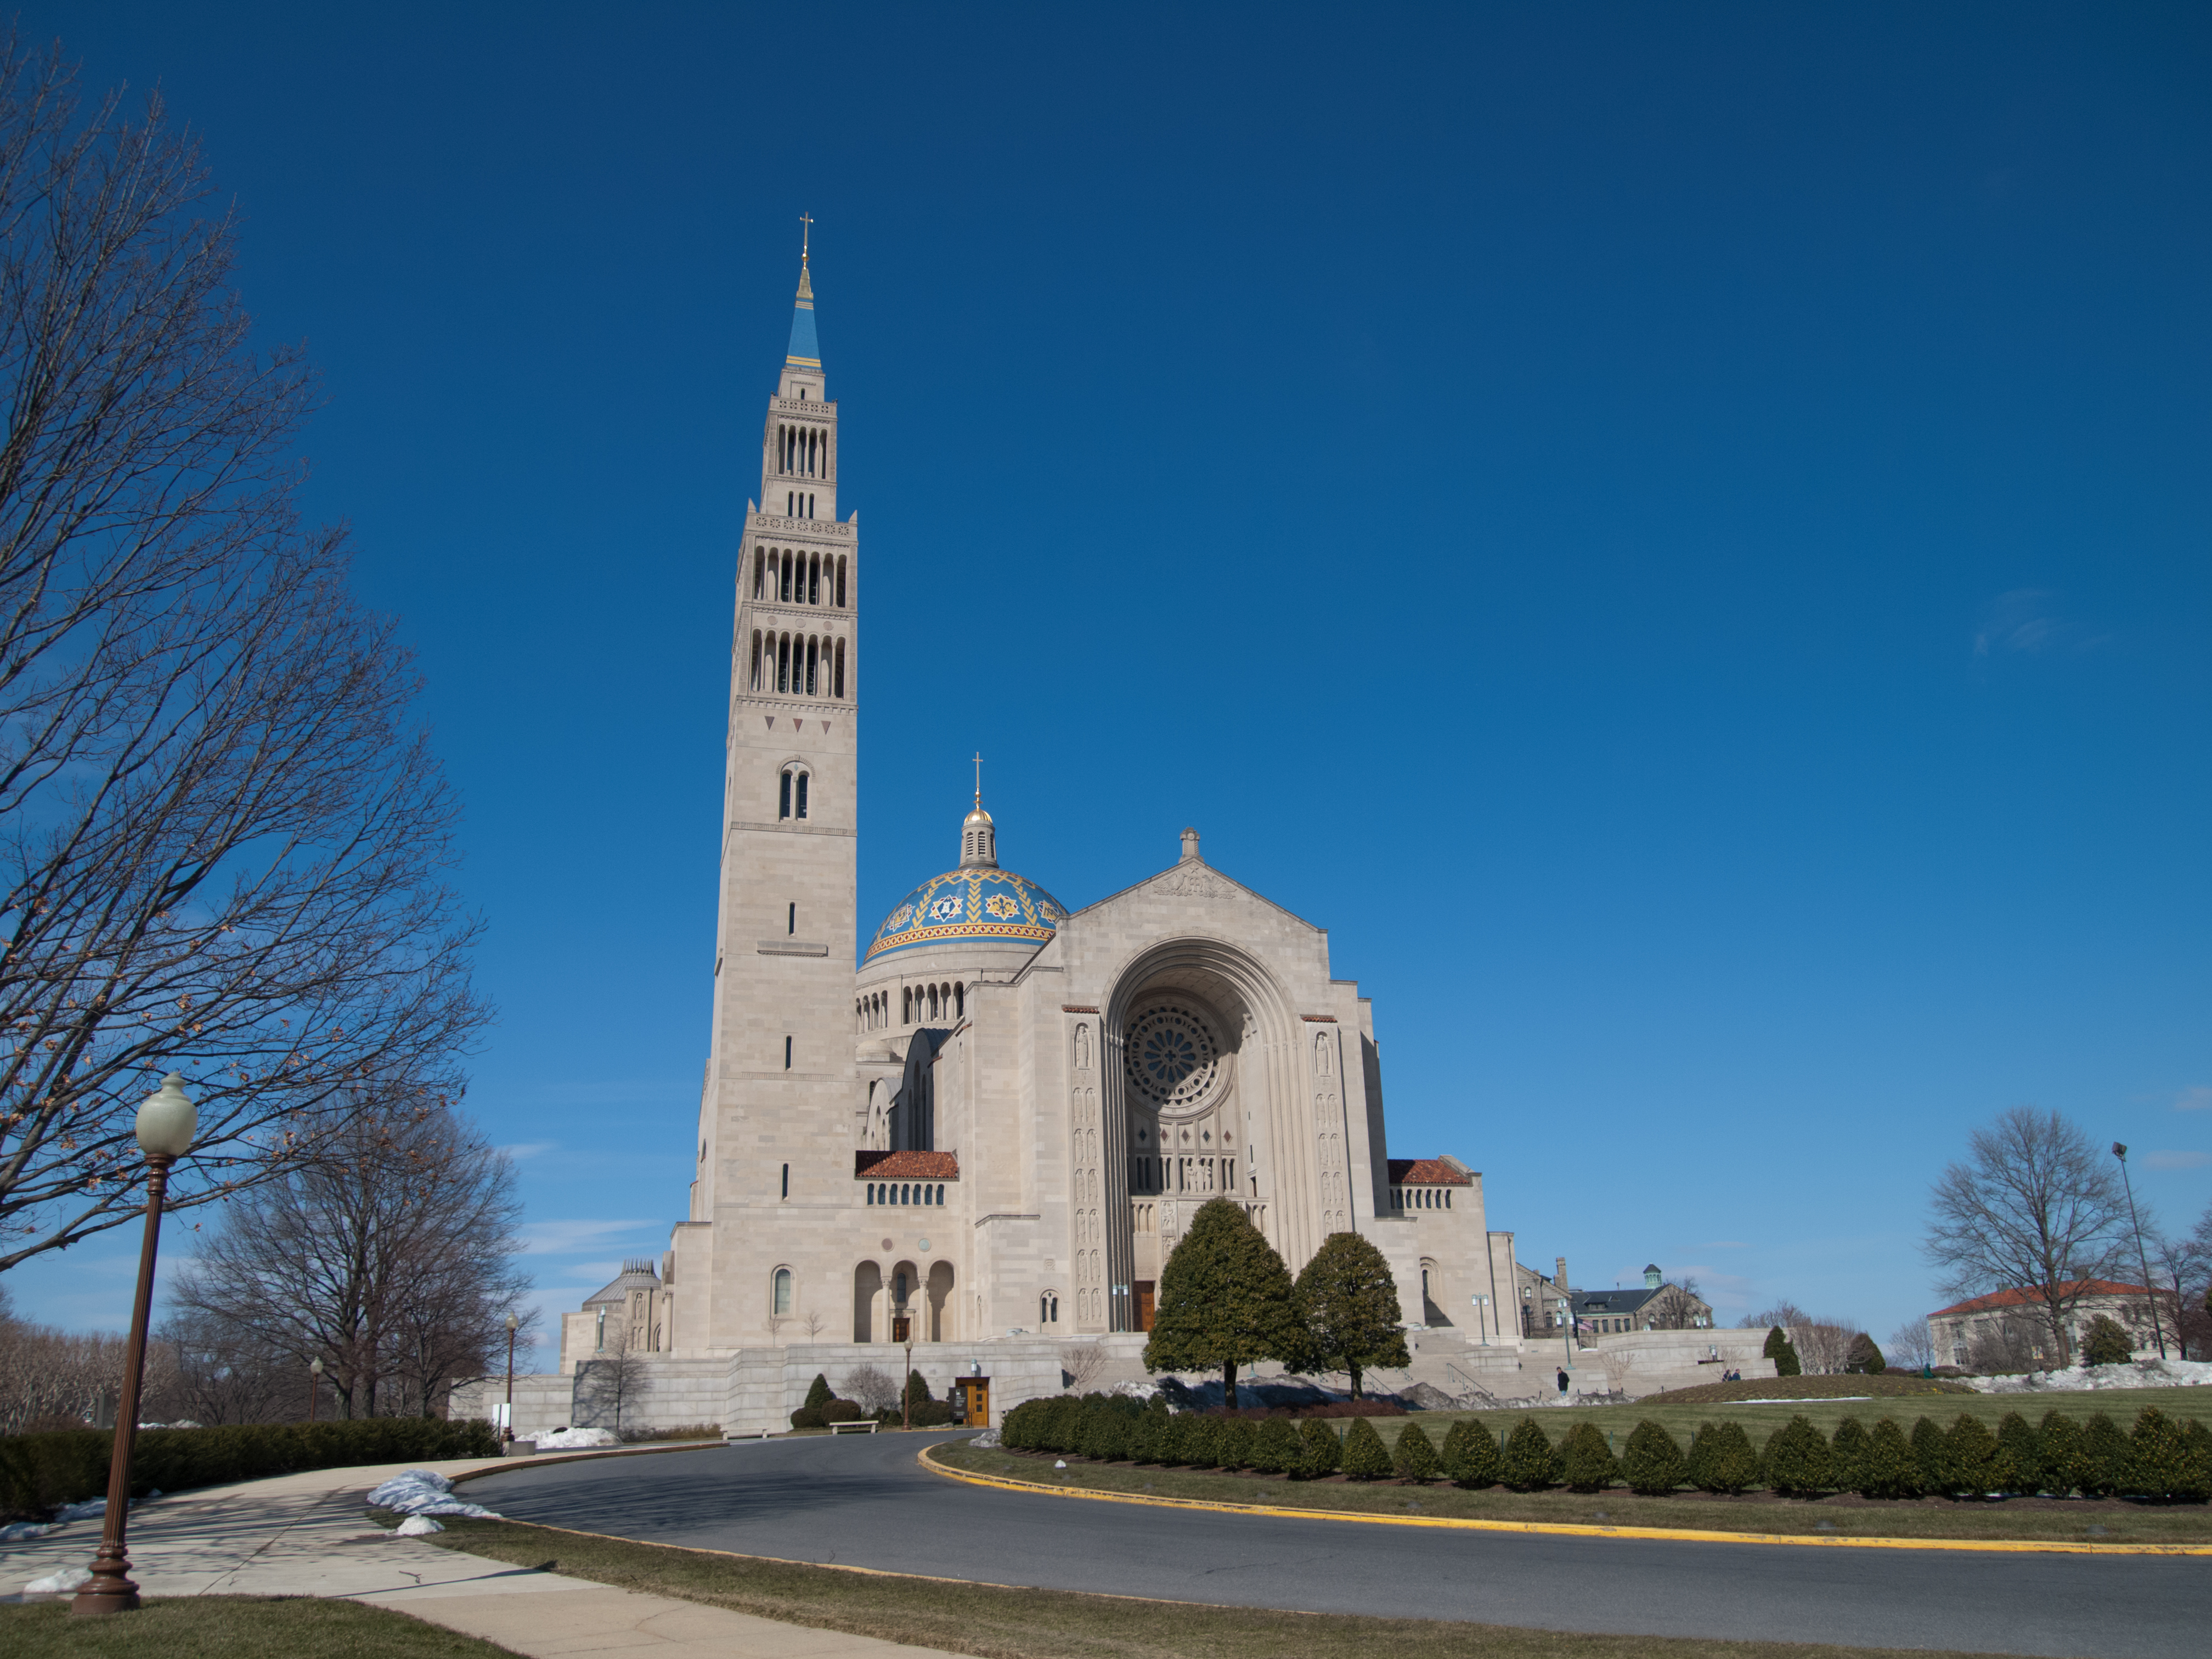 The main façade of the Basilica of the National Shrine of the Immaculate Conception. Image by Joseph V - originally posted to Flickr as Jesus Mountain, CC BY-SA 2.0, https://commons.wikimedia.org/w/index.php?curid=9601280